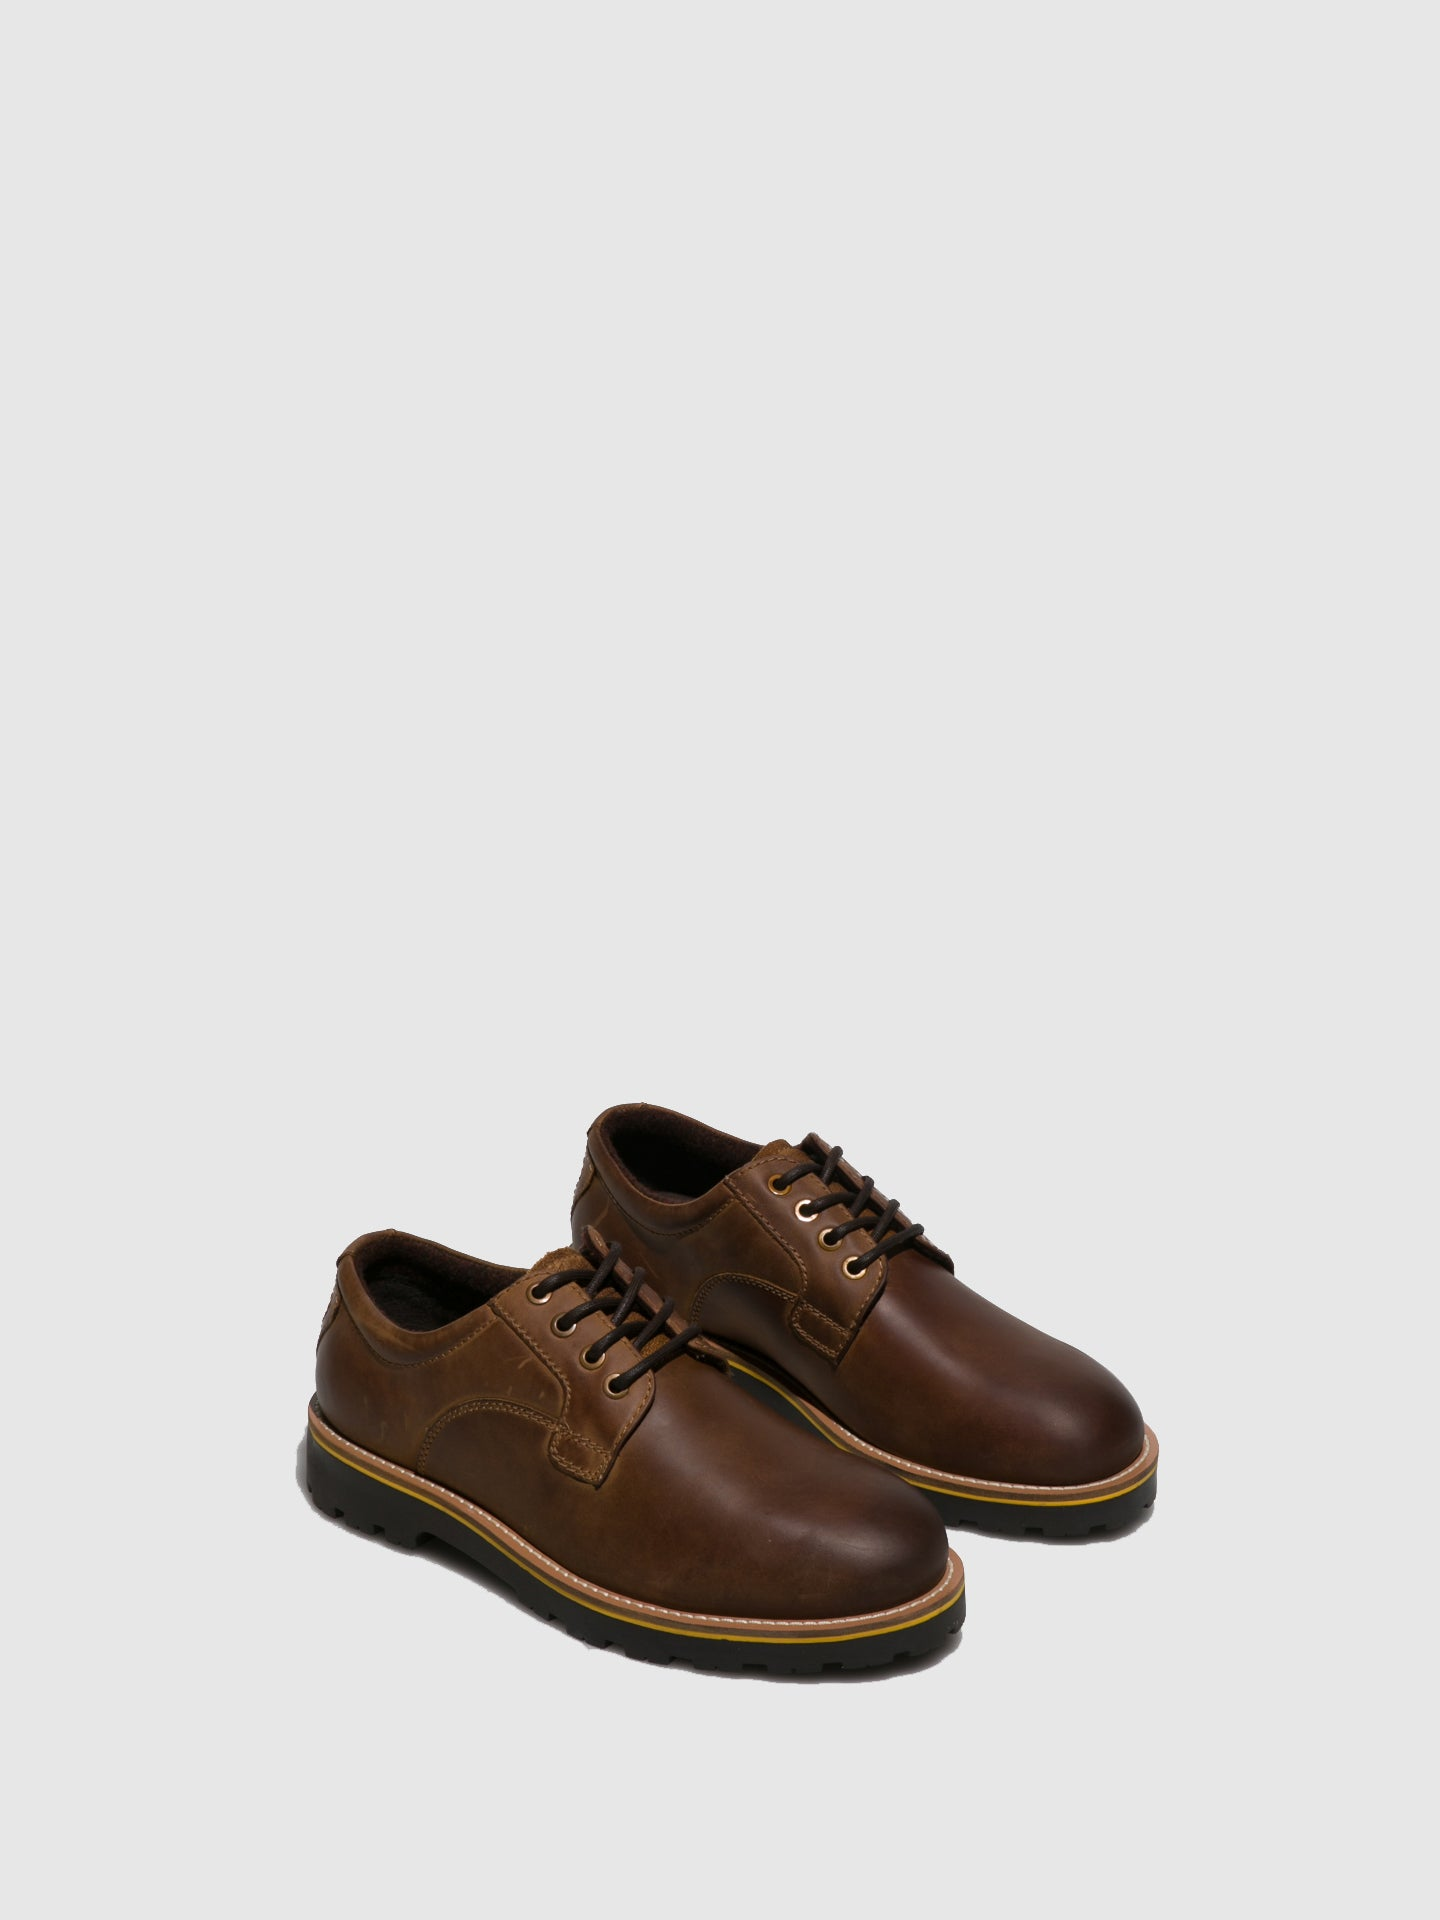 Camel Active Camel Leather Lace-up Shoes